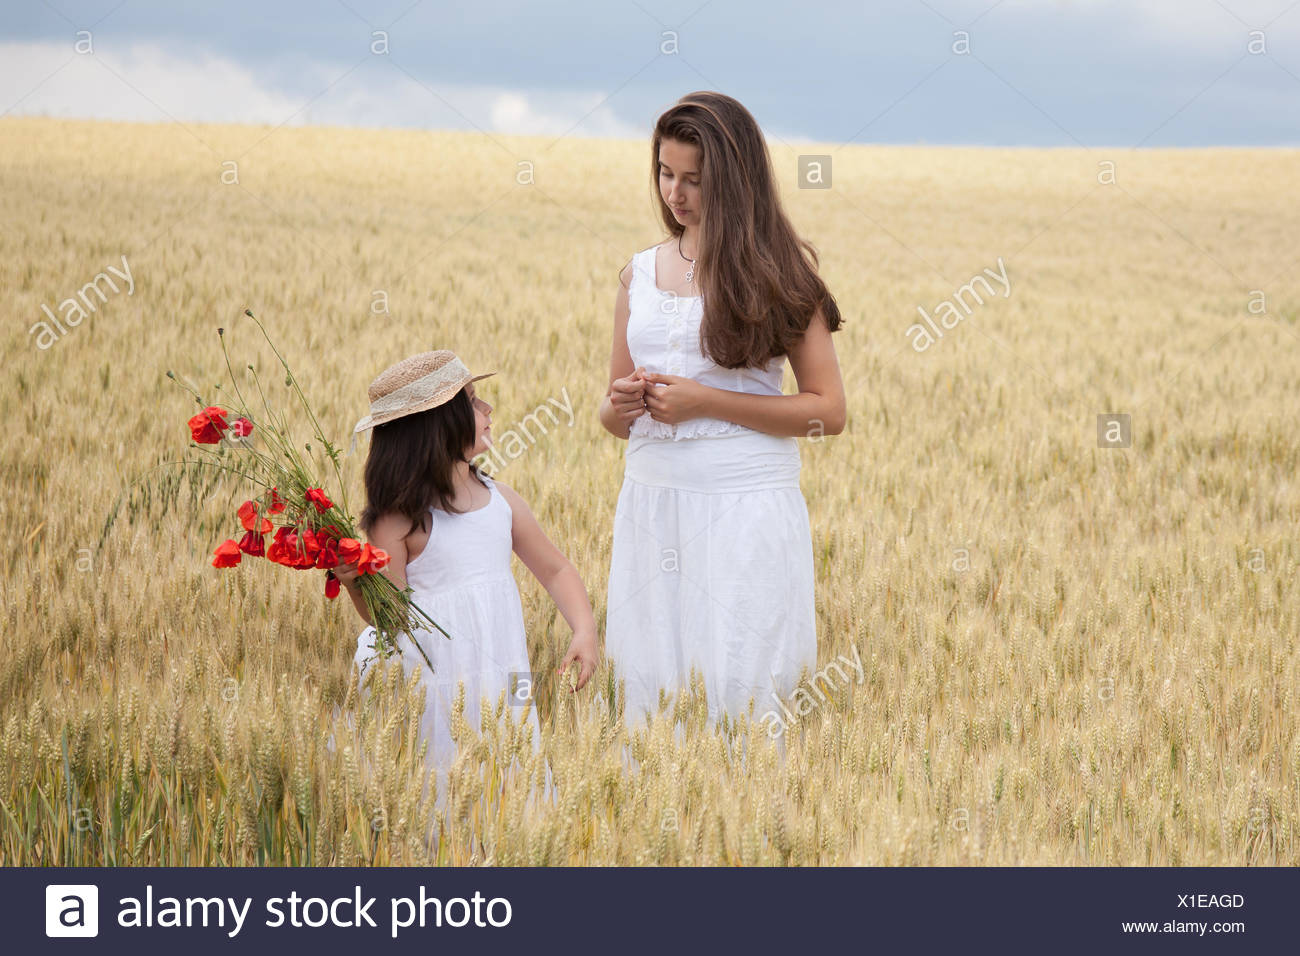 Two girls standing in wheat field with poppy flowers - Stock Image